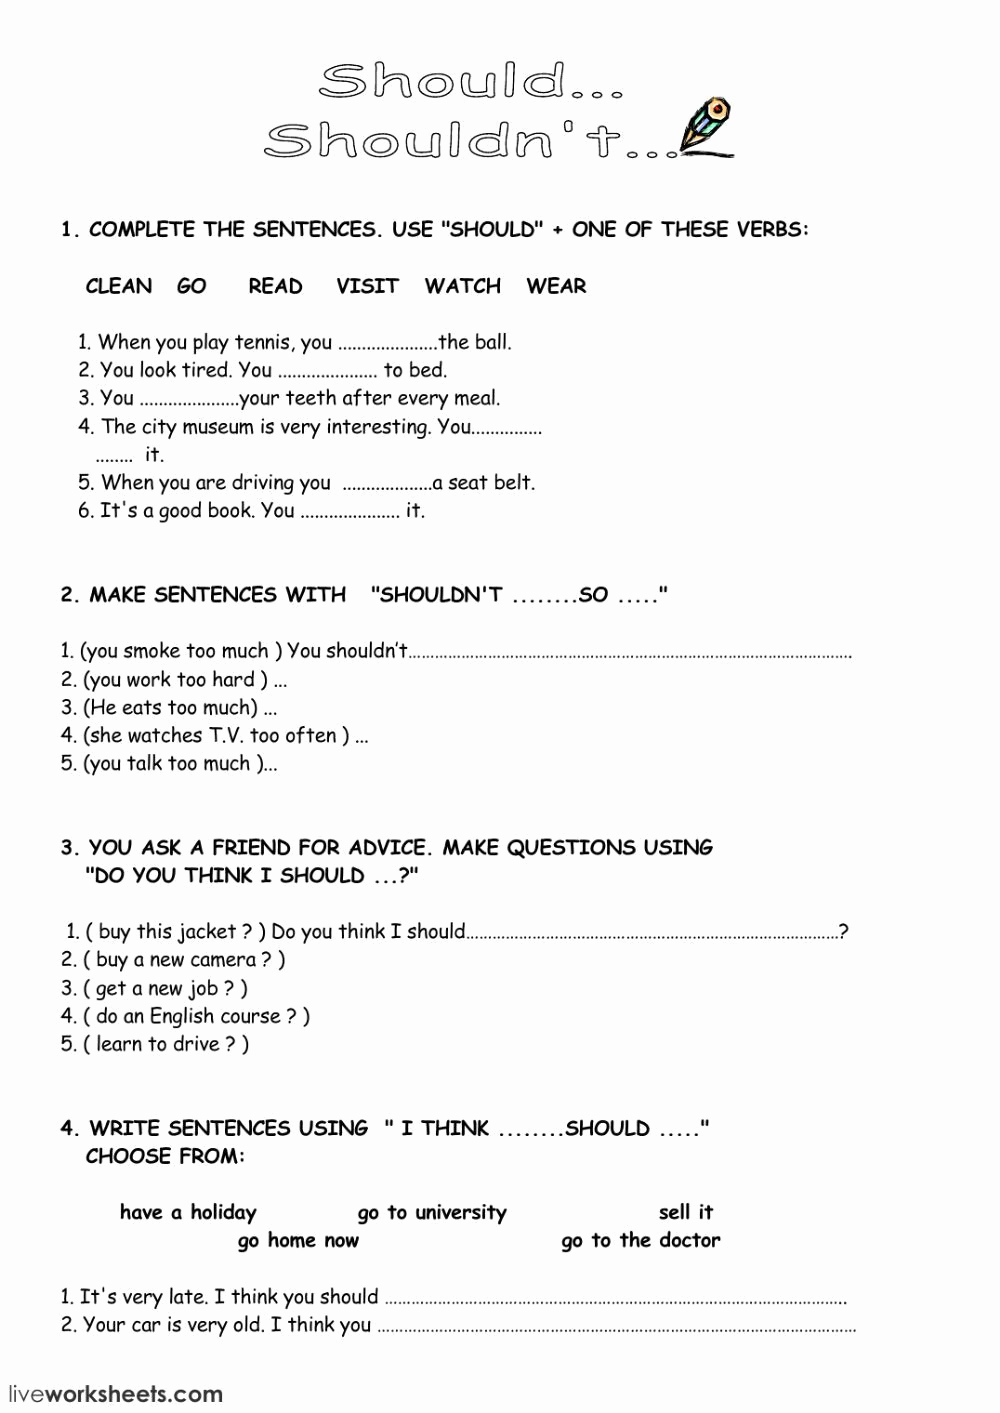 Bibliography Practice Worksheets Lovely Easily 20 Bibliography Practice Worksheets Worksheet